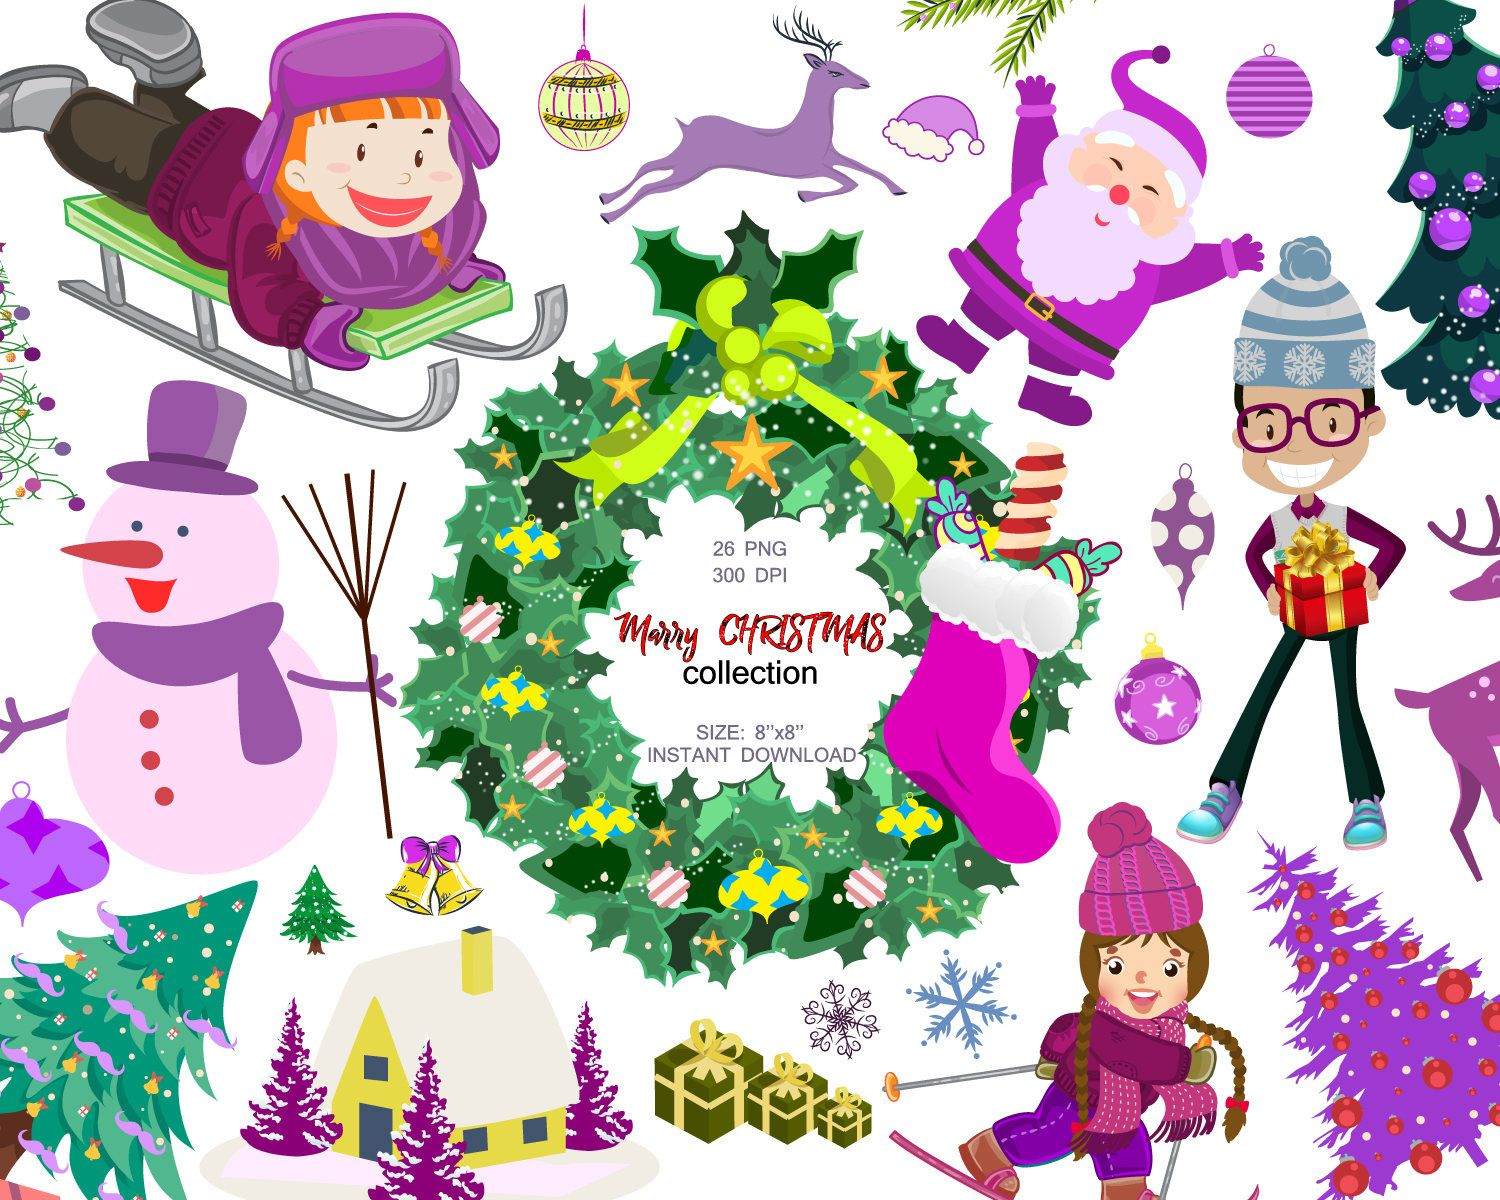 Marry Christmas collection, Christmas Clipart, Santa Claus,Winter ...